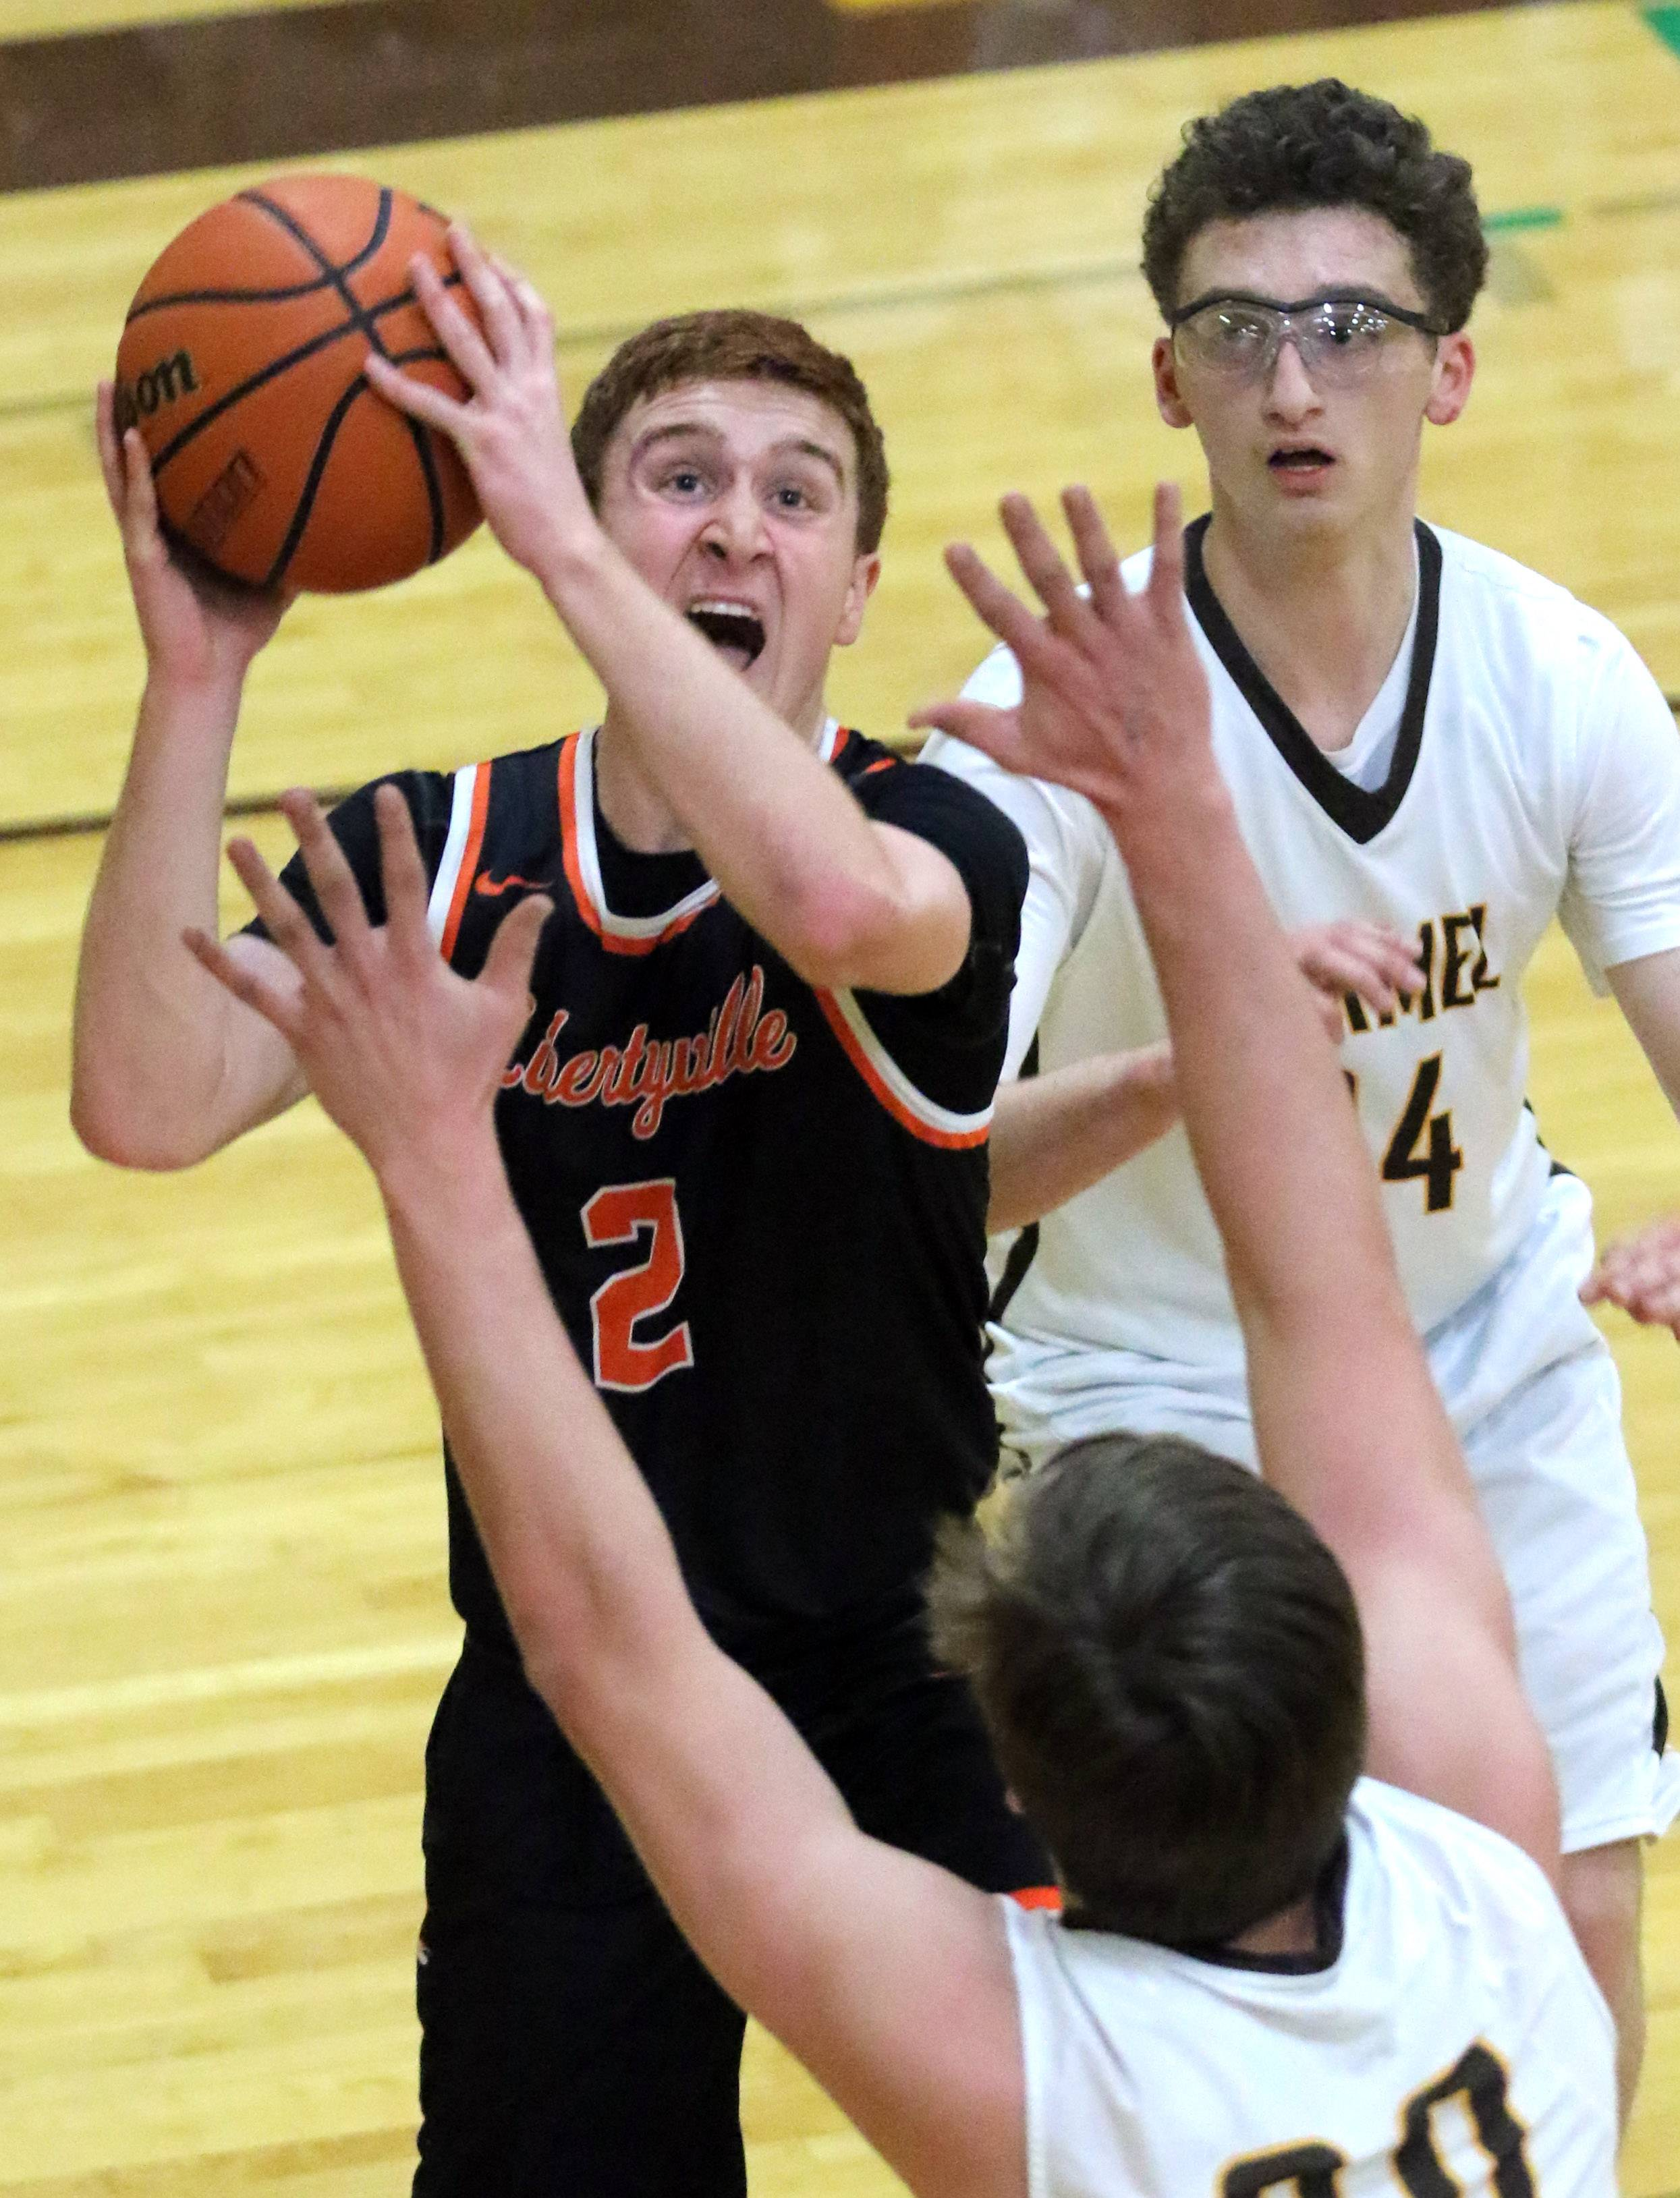 Images: Carmel vs. Libertyville, boys basketball